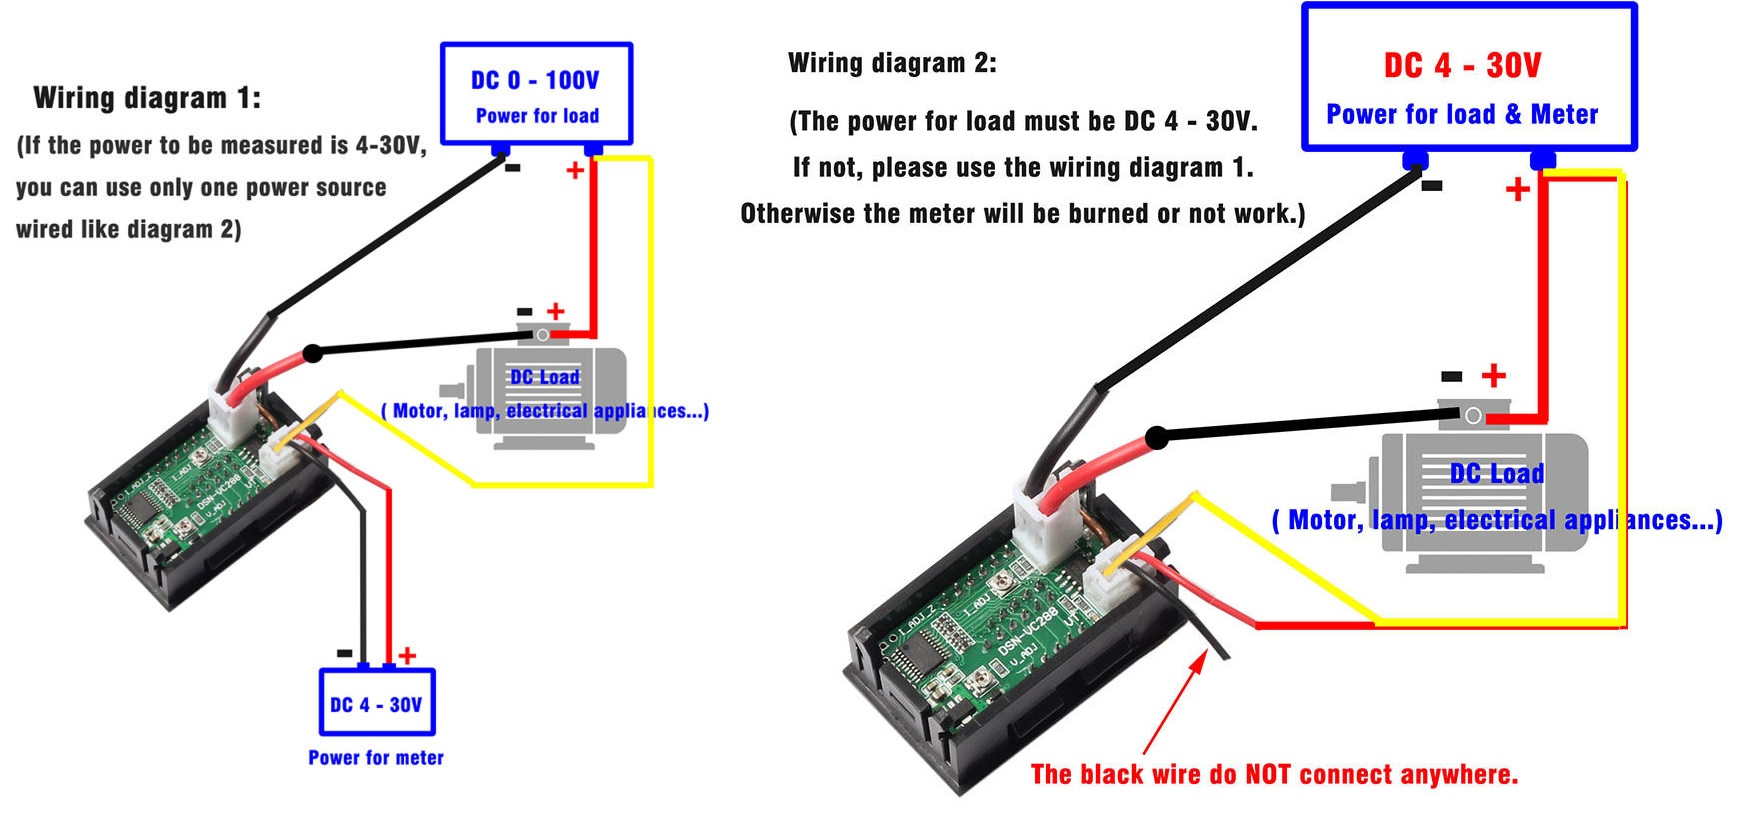 wiring diagram for amp volt meter with shunt ac amp meter